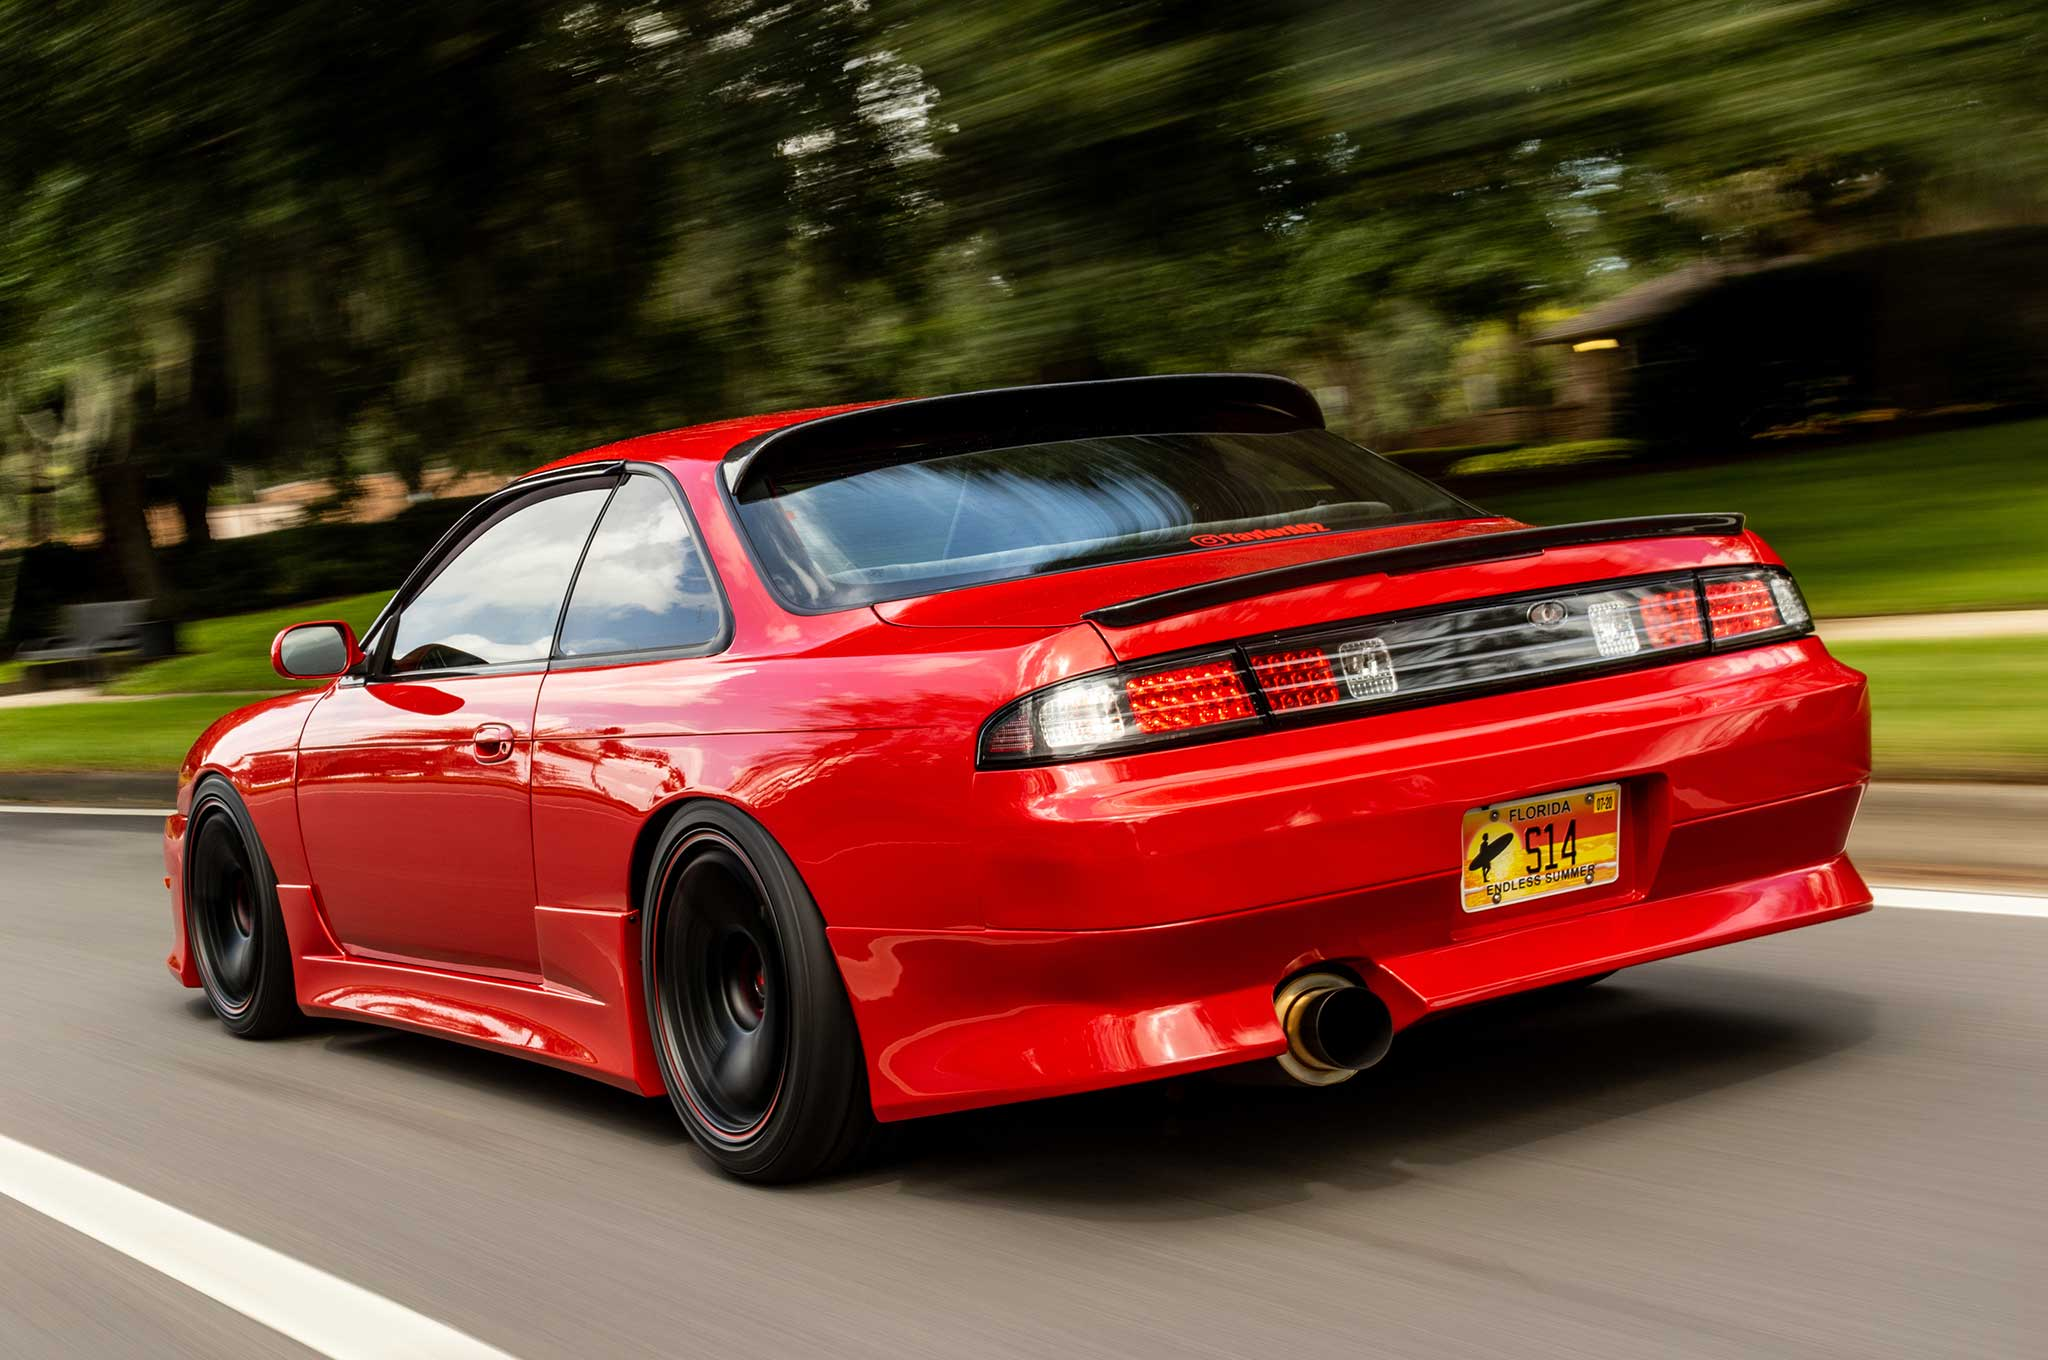 Red For Nissan S13 SR20 Swapped Top Feed Fuel Injector Rail Kit+ ...